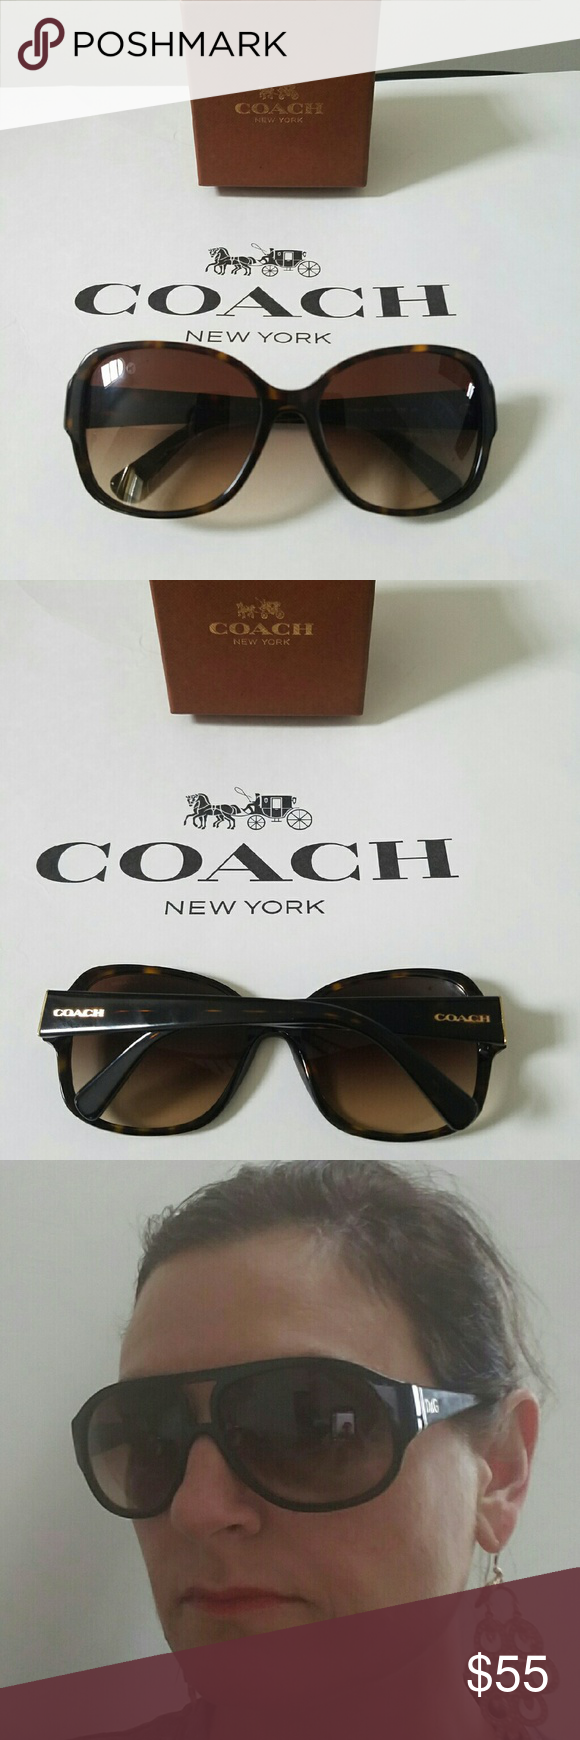 NWOT Coach sunglasses. Bought for my teen for xmas, she never wore and in 100% mint condition. She did keep the case. Coach HC 8166 sunglasses. Color 5120T5 Dark Tortoise shell brown gradient polarized lens. Coach Accessories Sunglasses